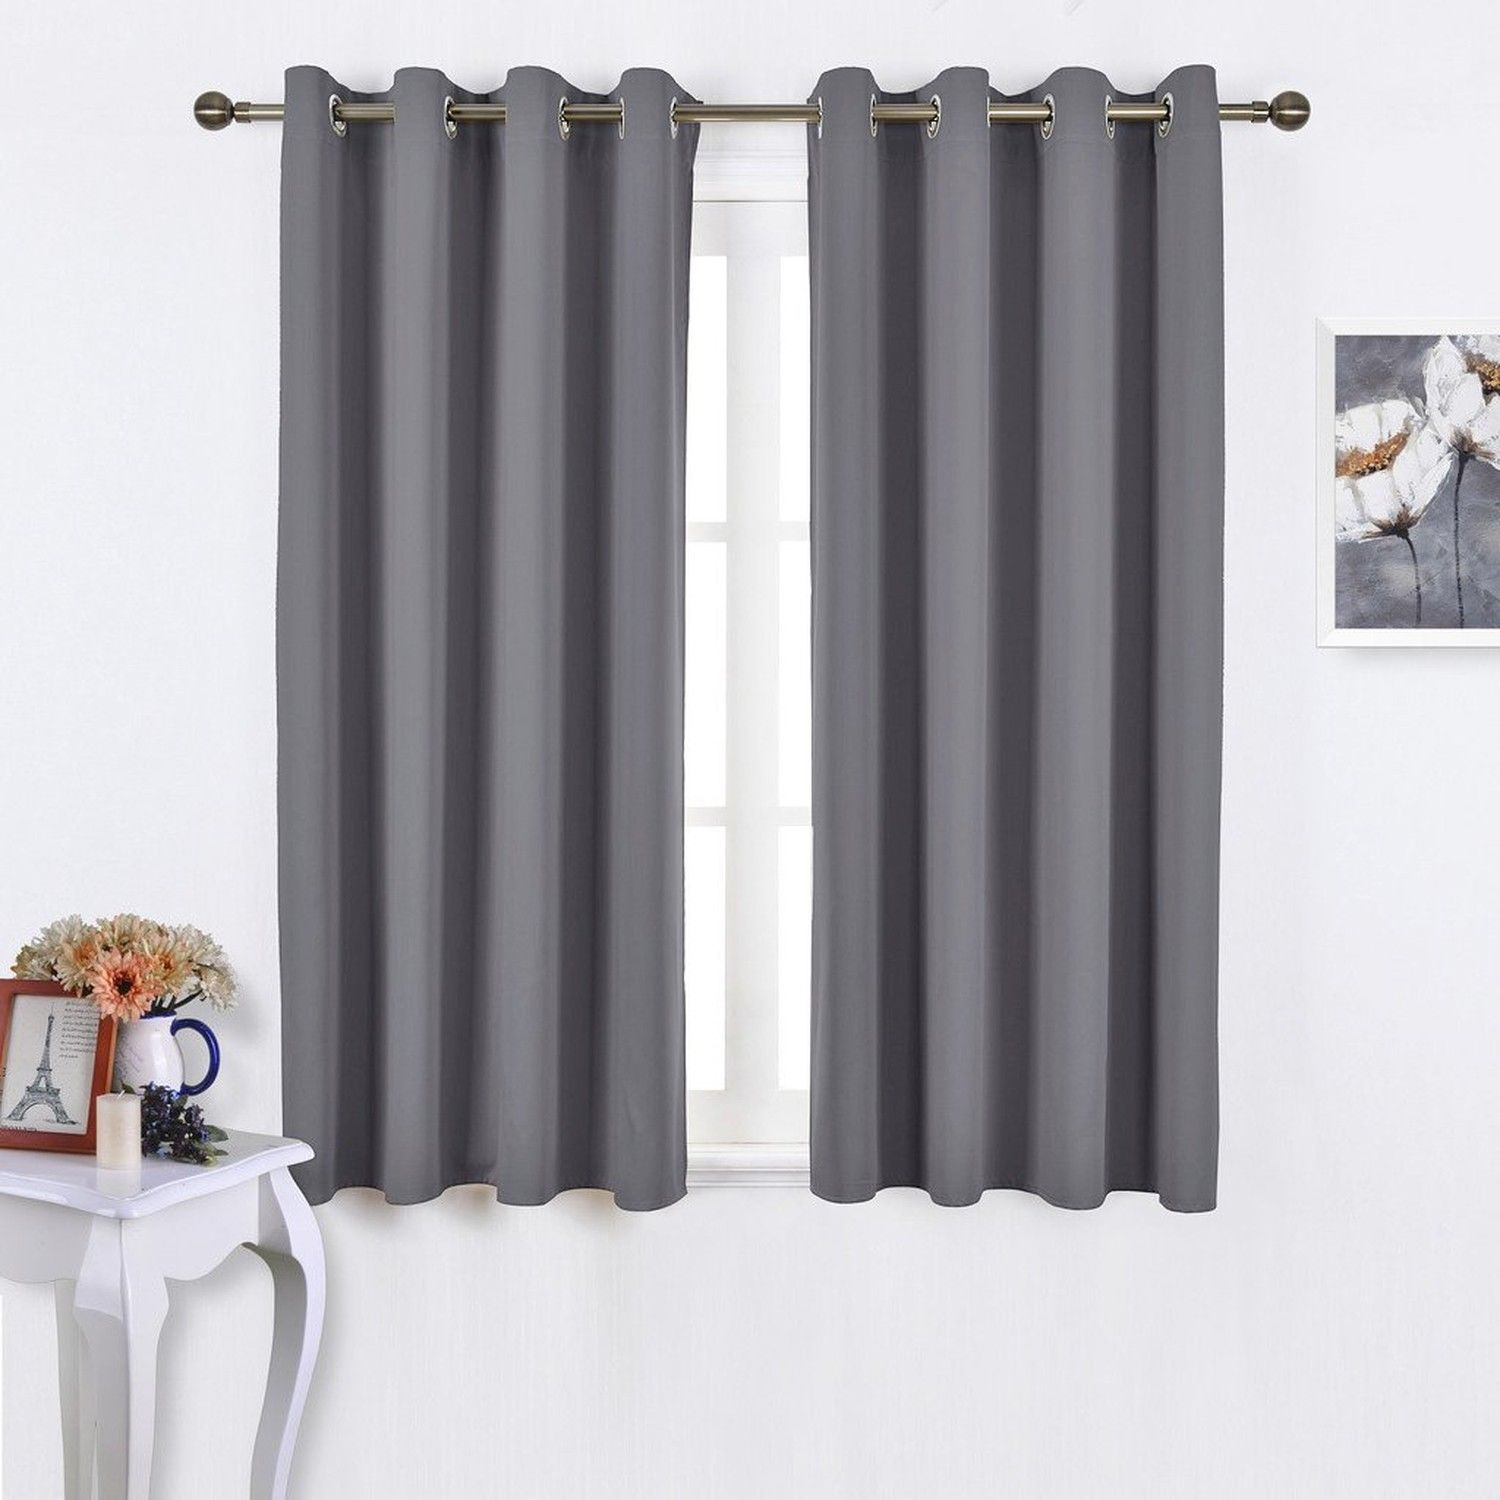 Thermal Insulated Curtains | Thermal Insulated Blackout Curtain | Solid Thermal Insulated Blackout Curtain